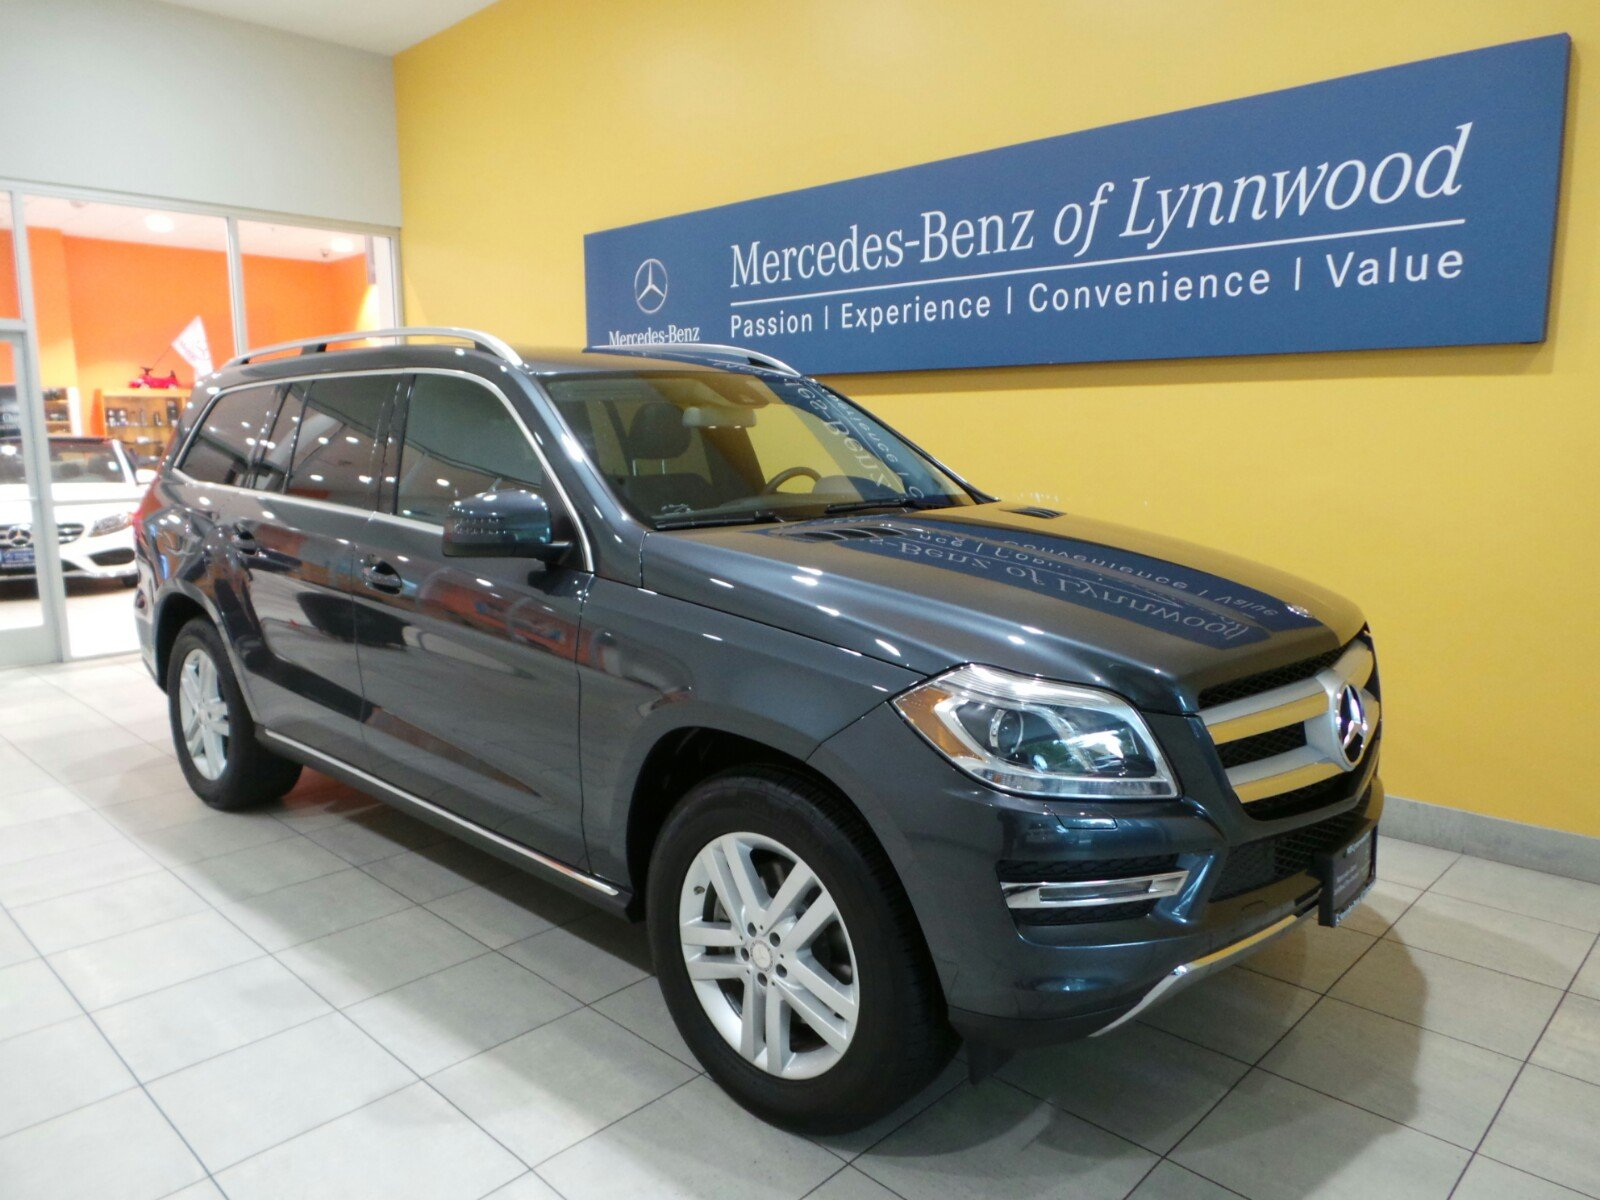 Pre owned 2014 mercedes benz gl class gl450 4matic suv in for Pre owned mercedes benz suv